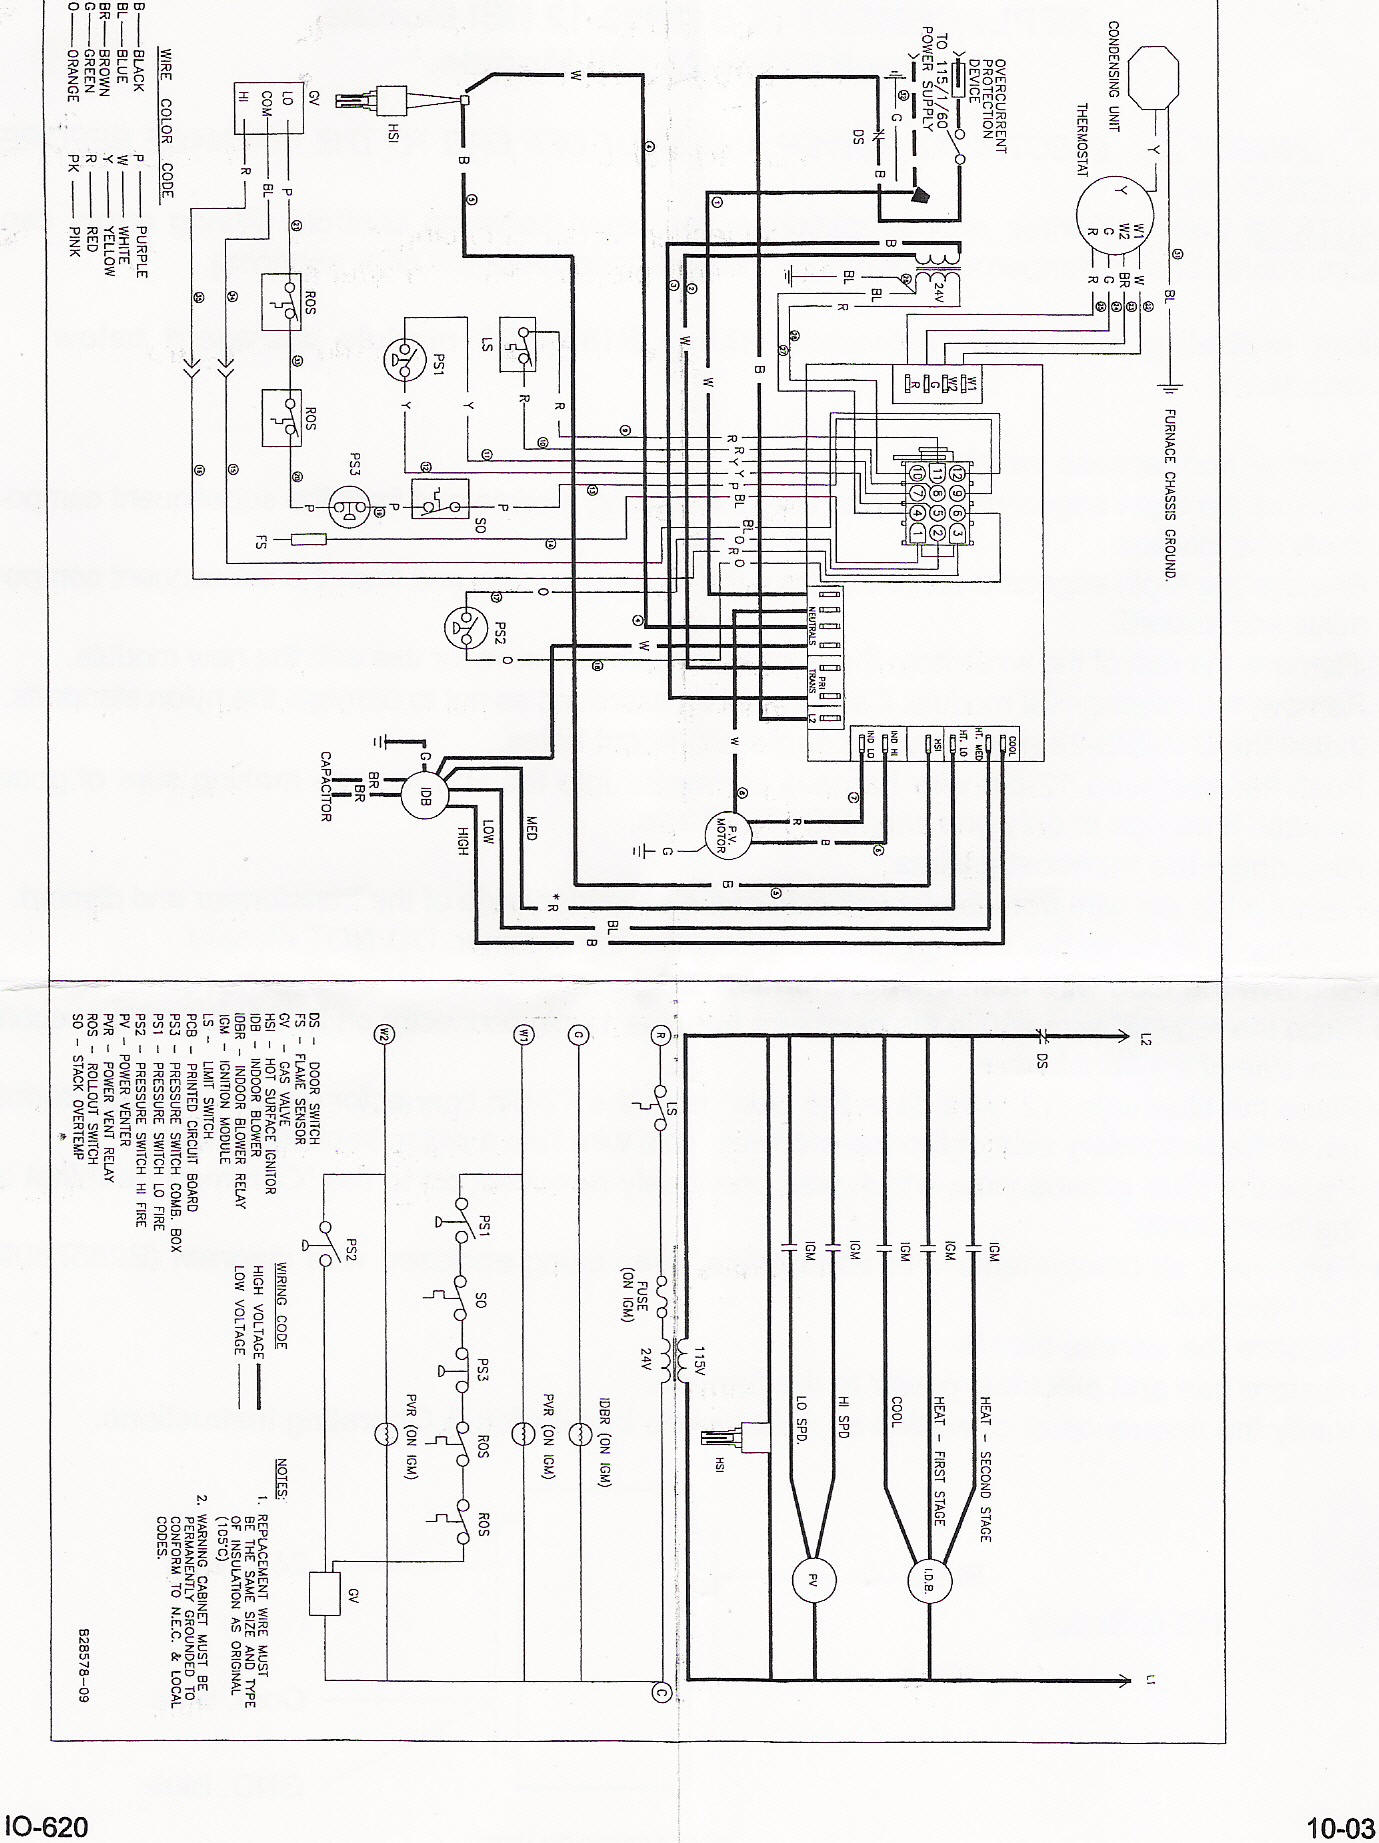 goodma2 instr goodman control board b18099 23 instructions goodman defrost control board wiring diagram at bakdesigns.co